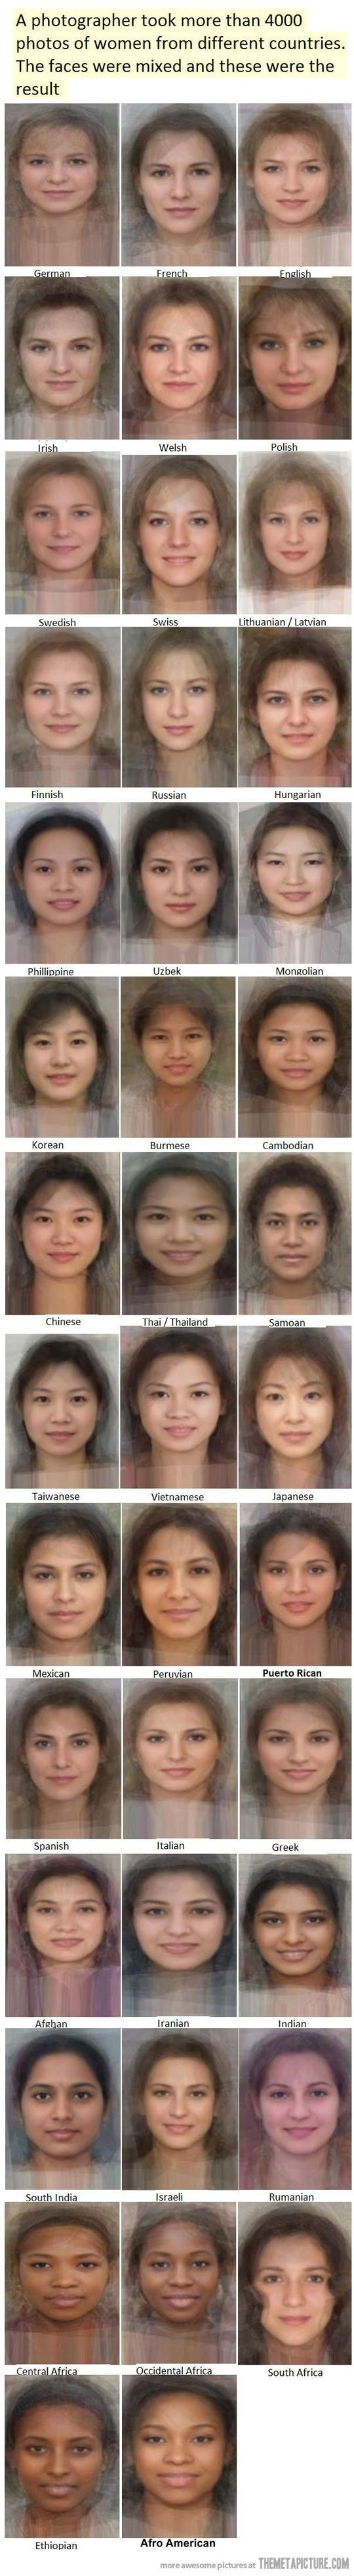 Interesting - the looks of different nationalities